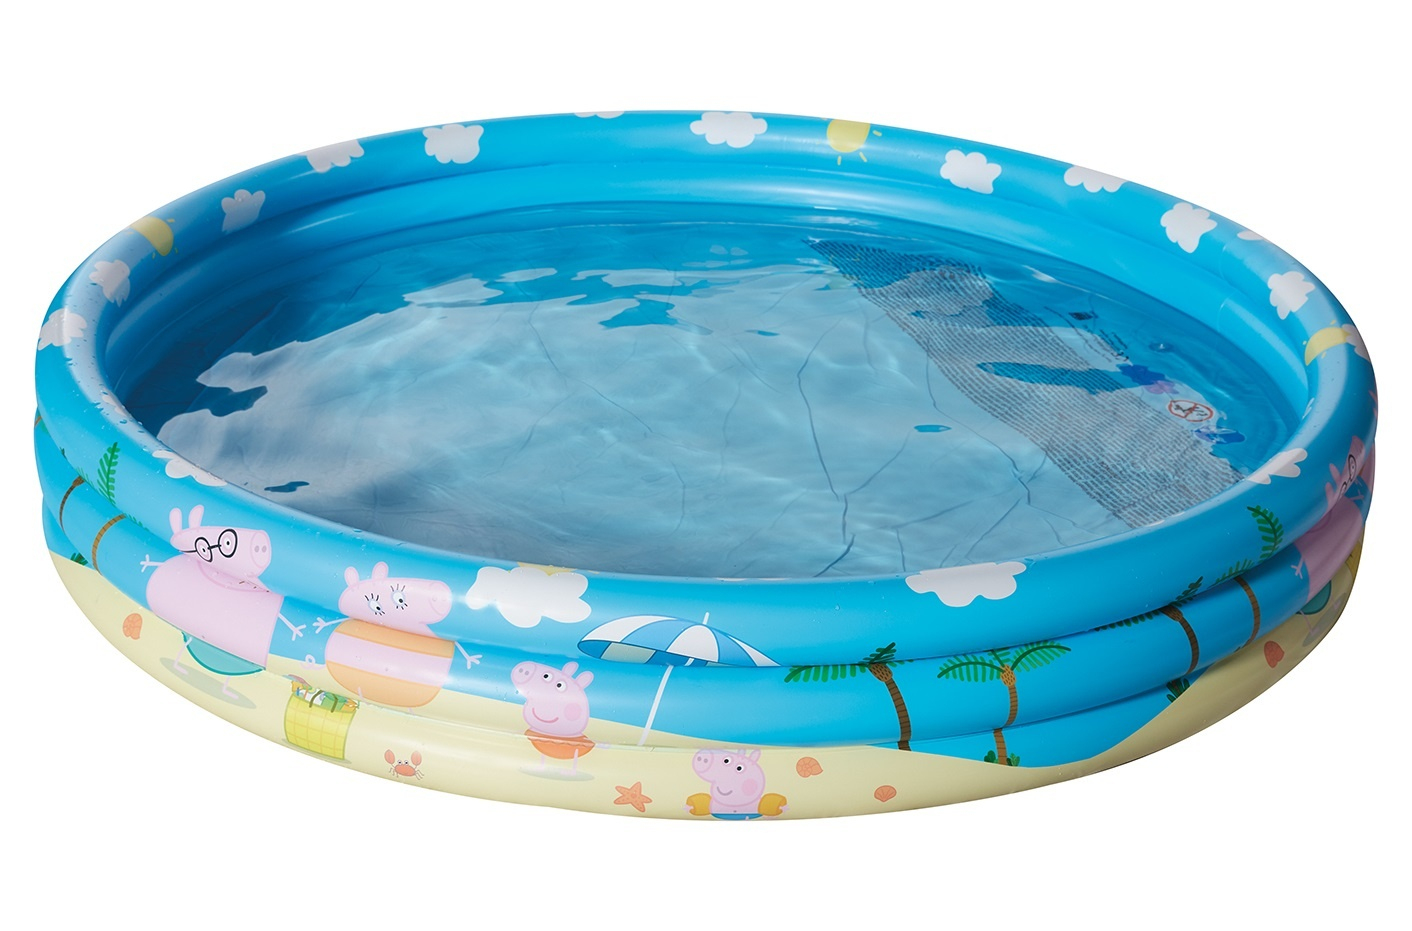 Happy People Piscine Gonflable Peppa Pig150 X 25 Cm Bleu ... à Piscines Gonflables